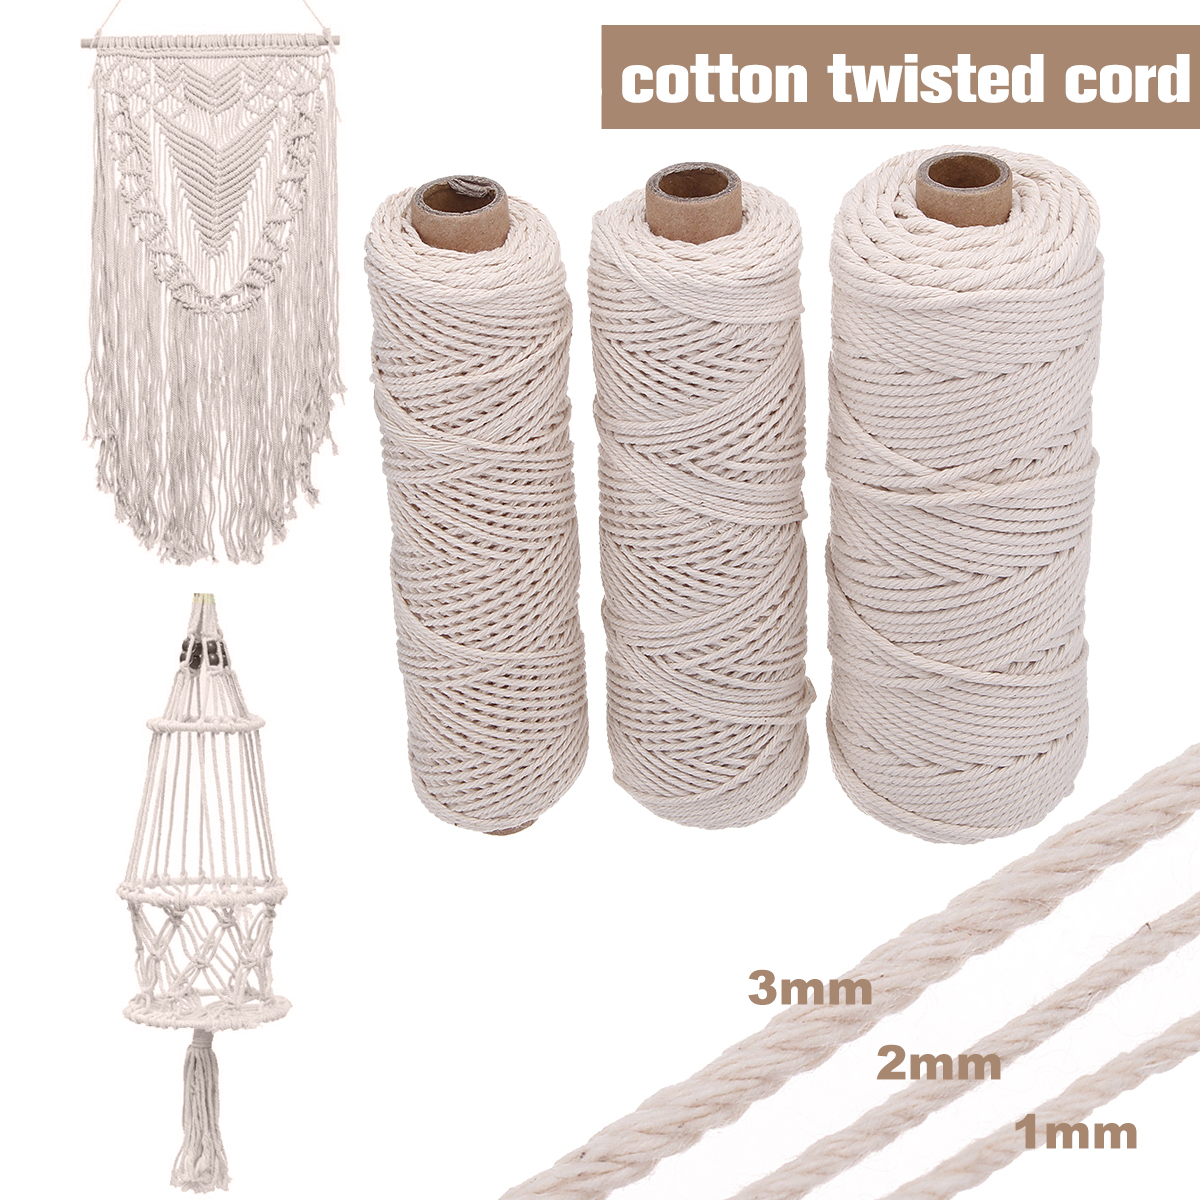 3 Size 1/2/3mm Braided Soft Beige Twisted Cotton Rope Cord Craft Macrame String DIY Handmade Tying Thread Macrame Cord Rope